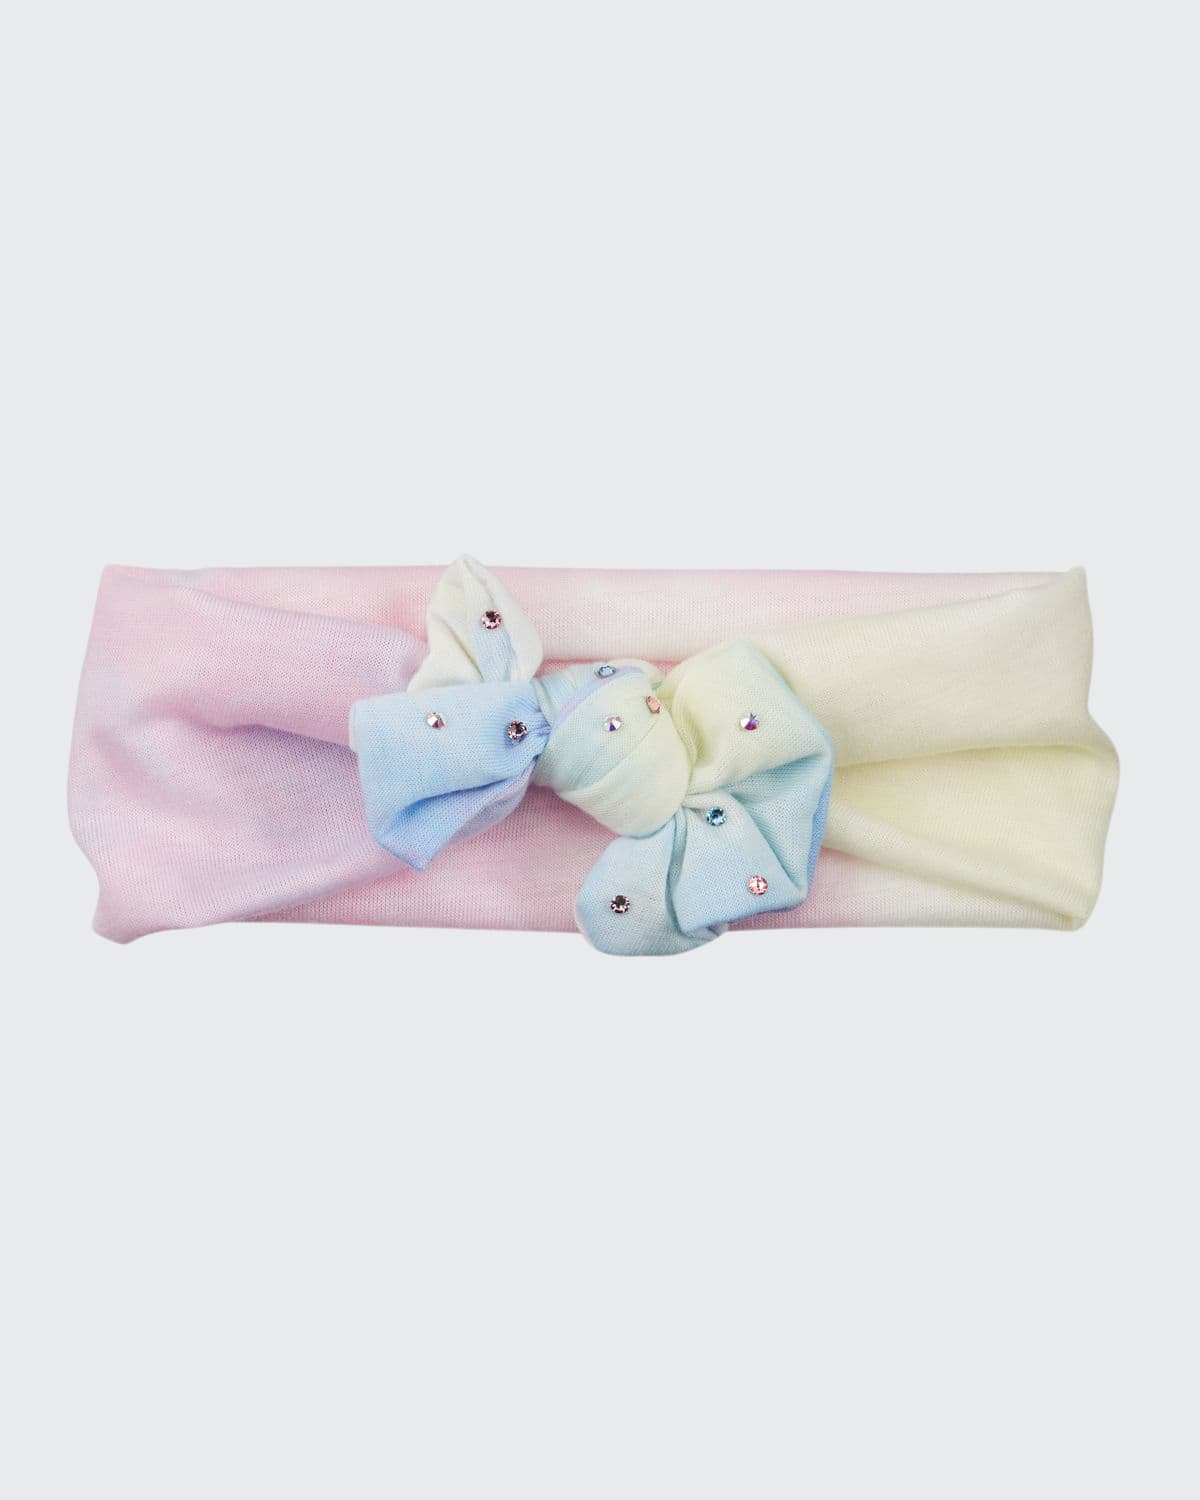 Girl's Tie-Dye Knotted Baby Headband